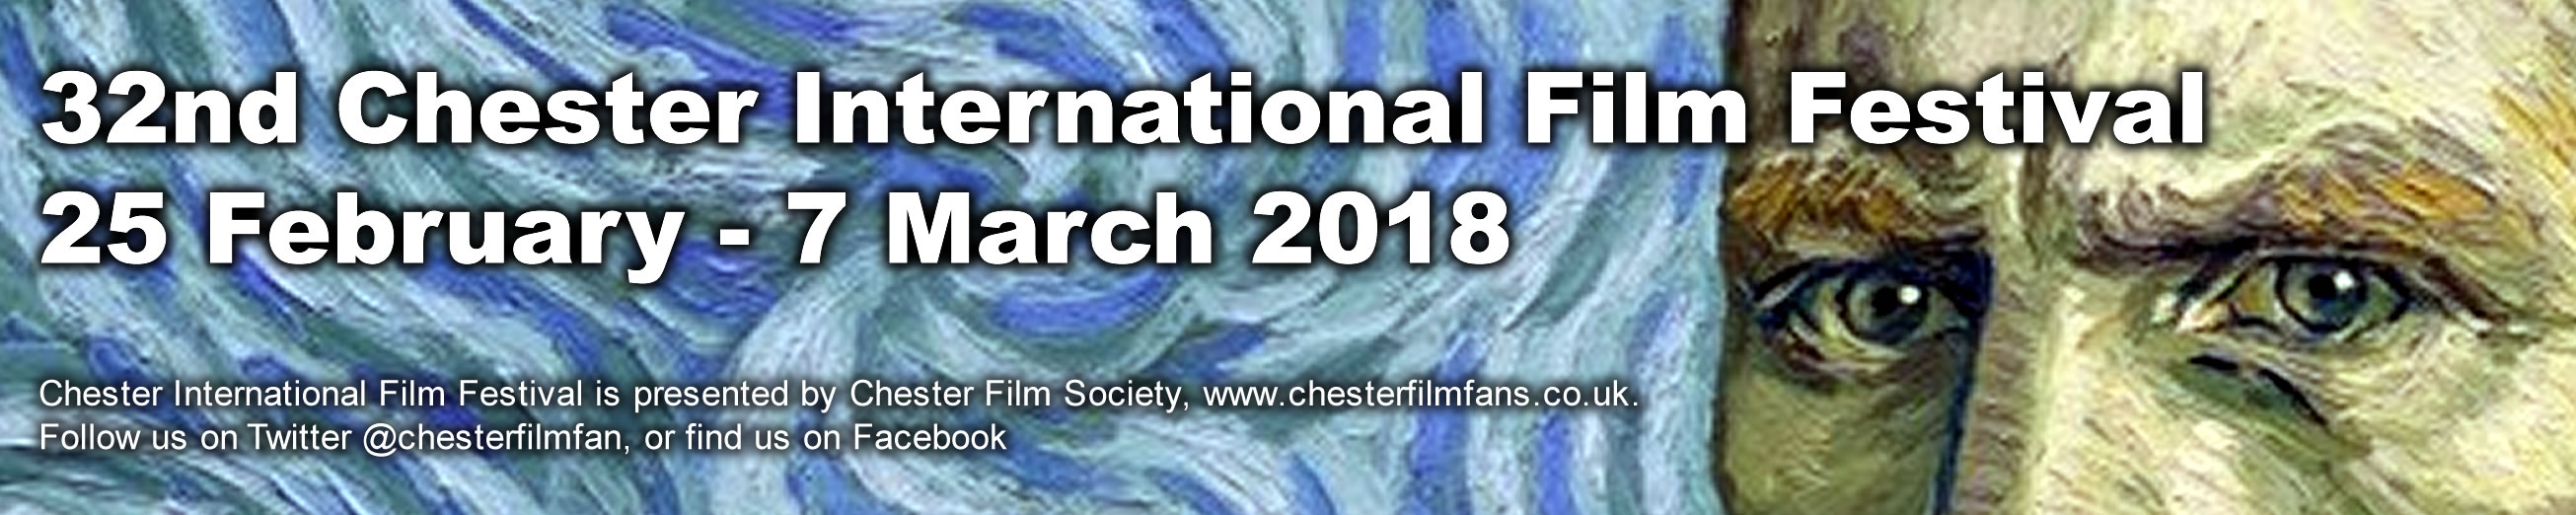 Chester International Film Festival